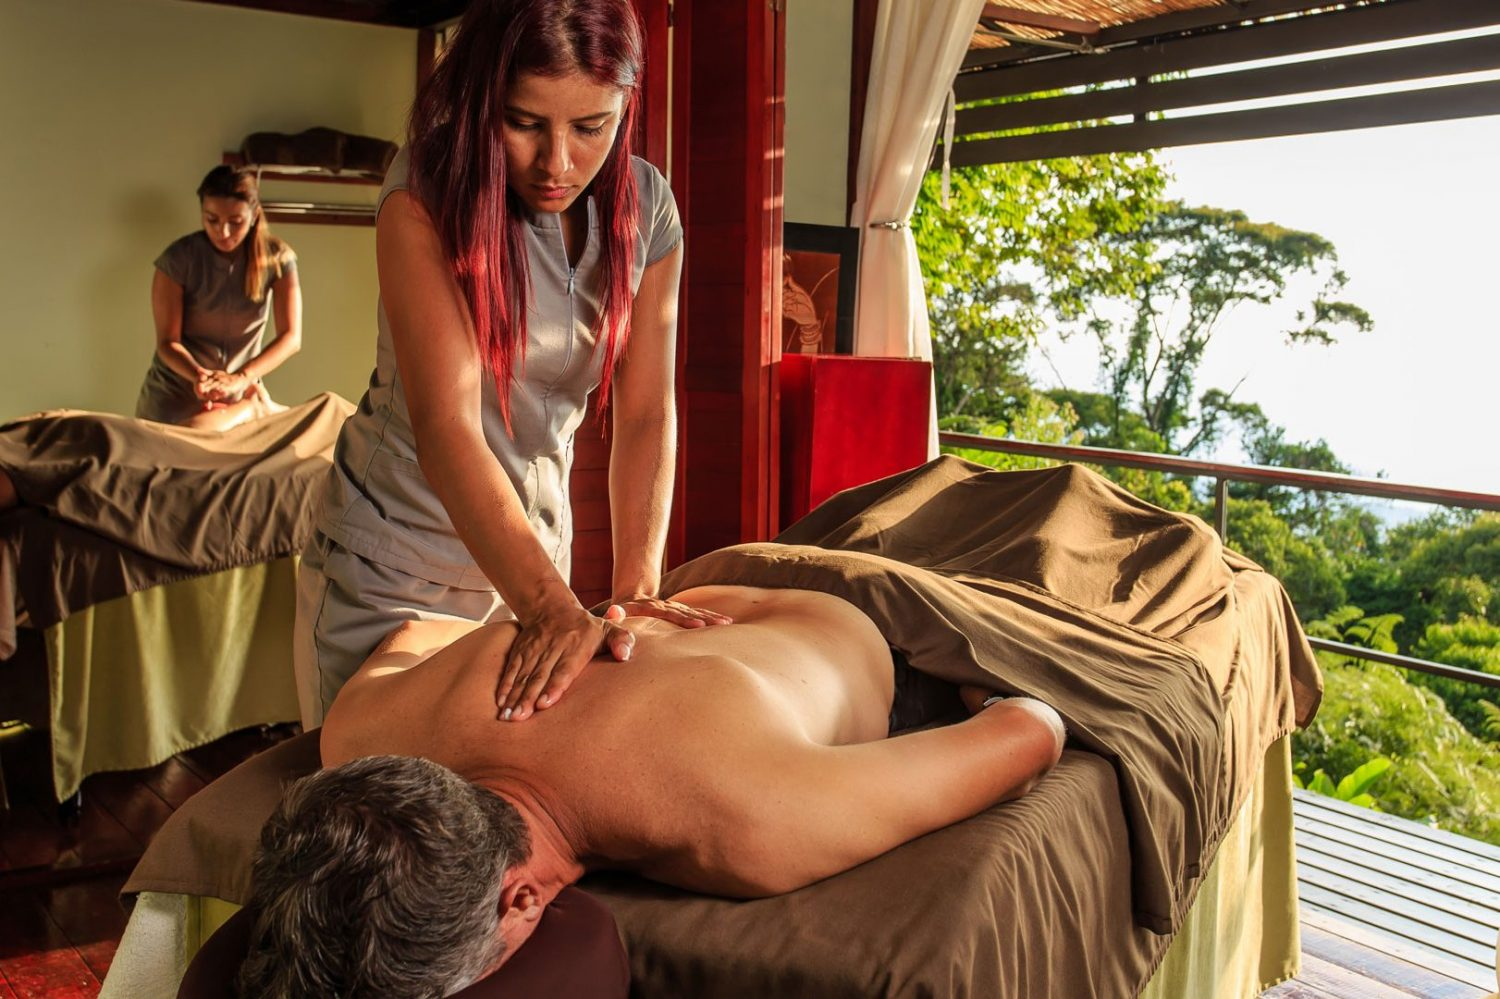 Massage therapy is a feature of the RP Costa Rica spa resort.